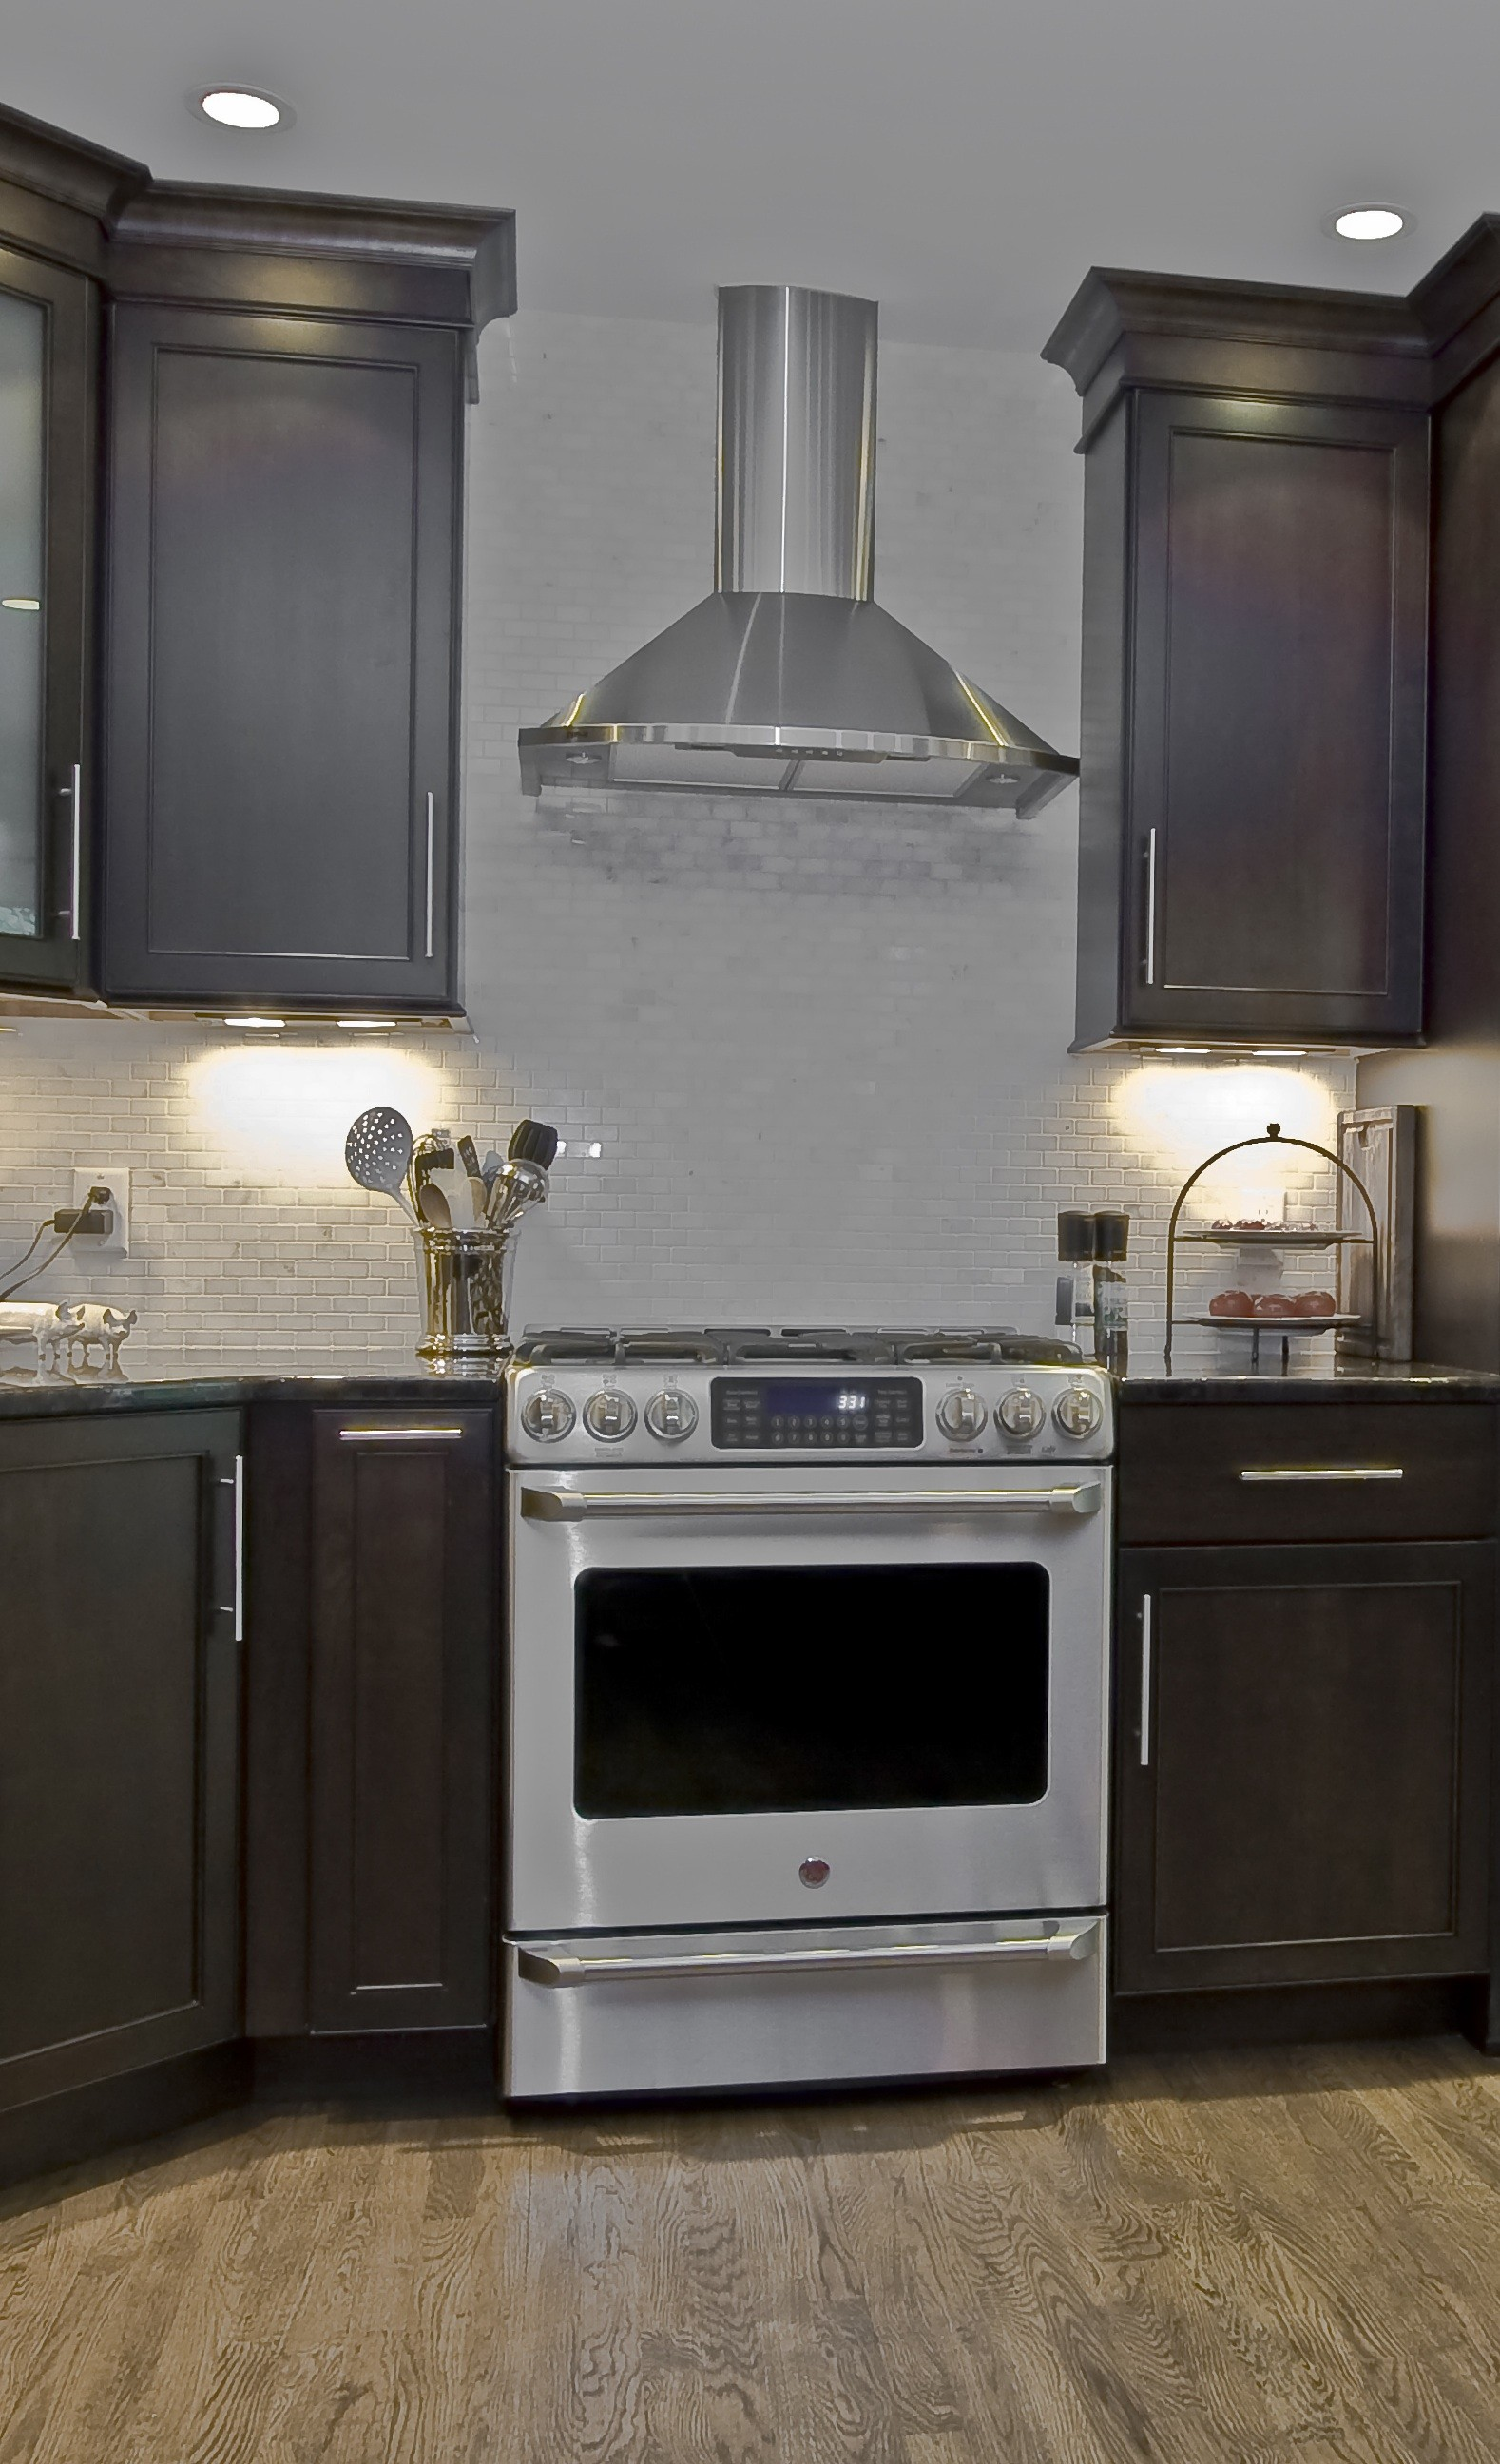 kitchen renovation costs nj how to redo cabinets on a budget pricing guide for your next monmouth county remodel